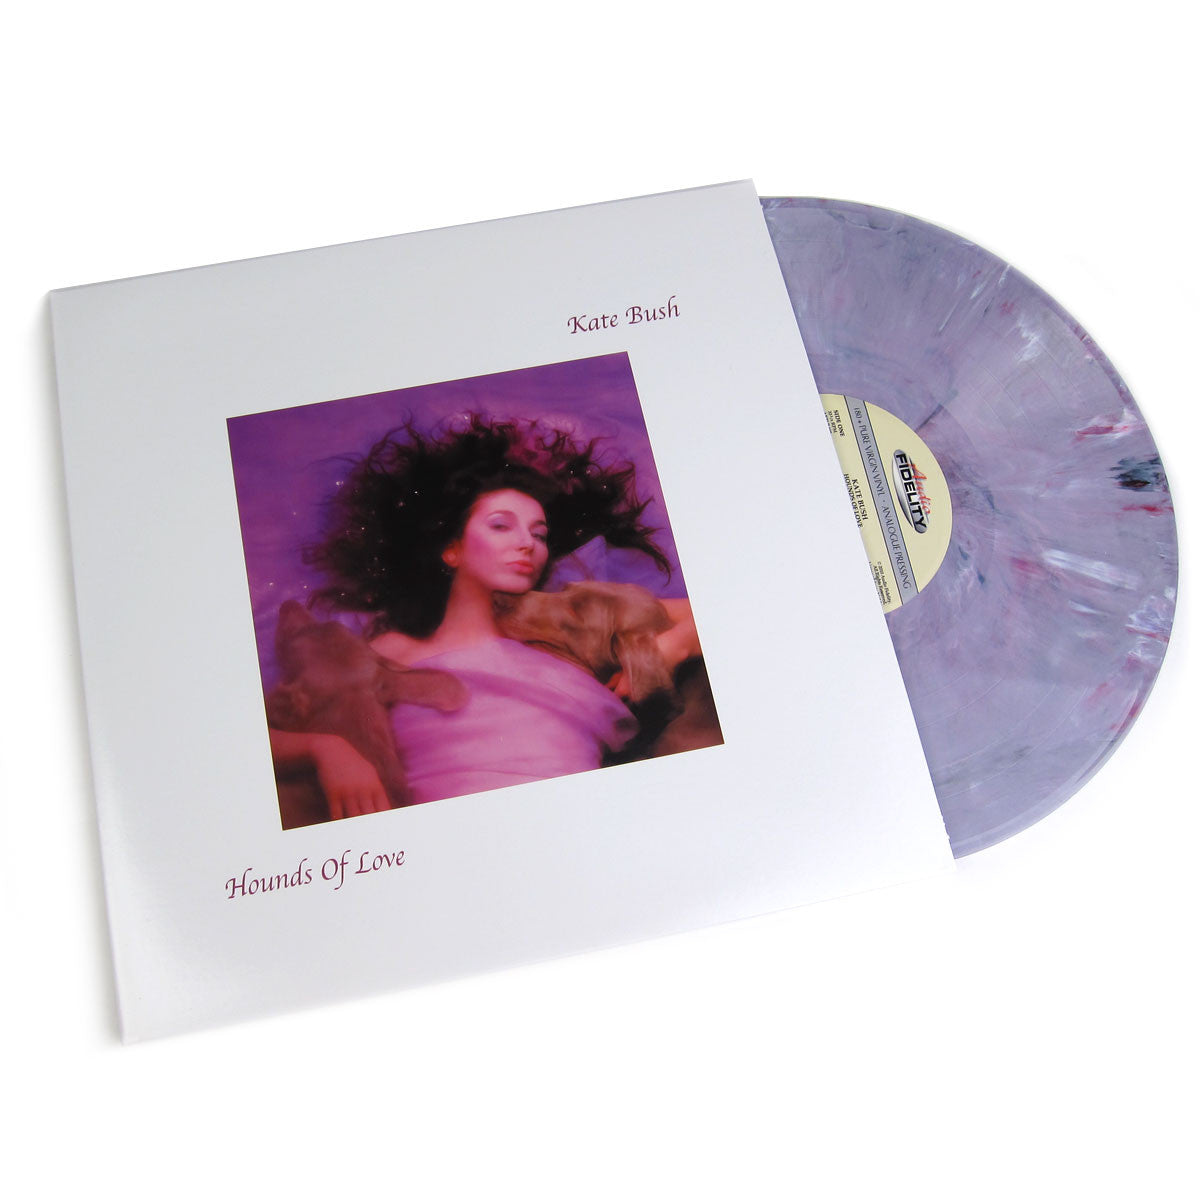 Kate Bush: Hounds Of Love (180g, Colored Vinyl) Vinyl LP